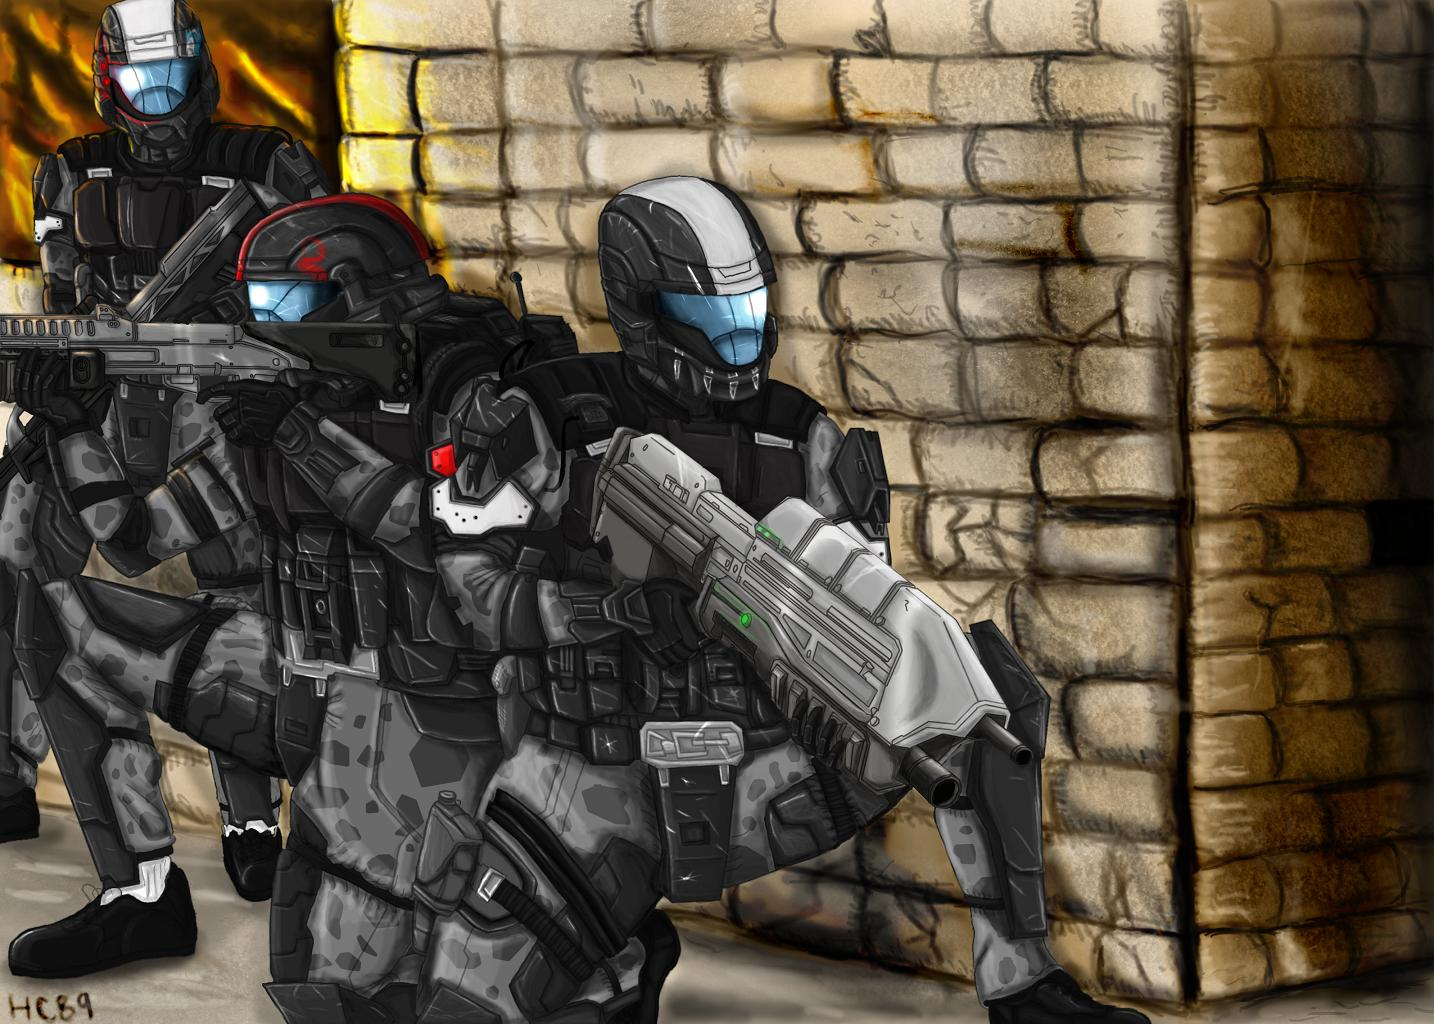 ODST: Feet first into hell